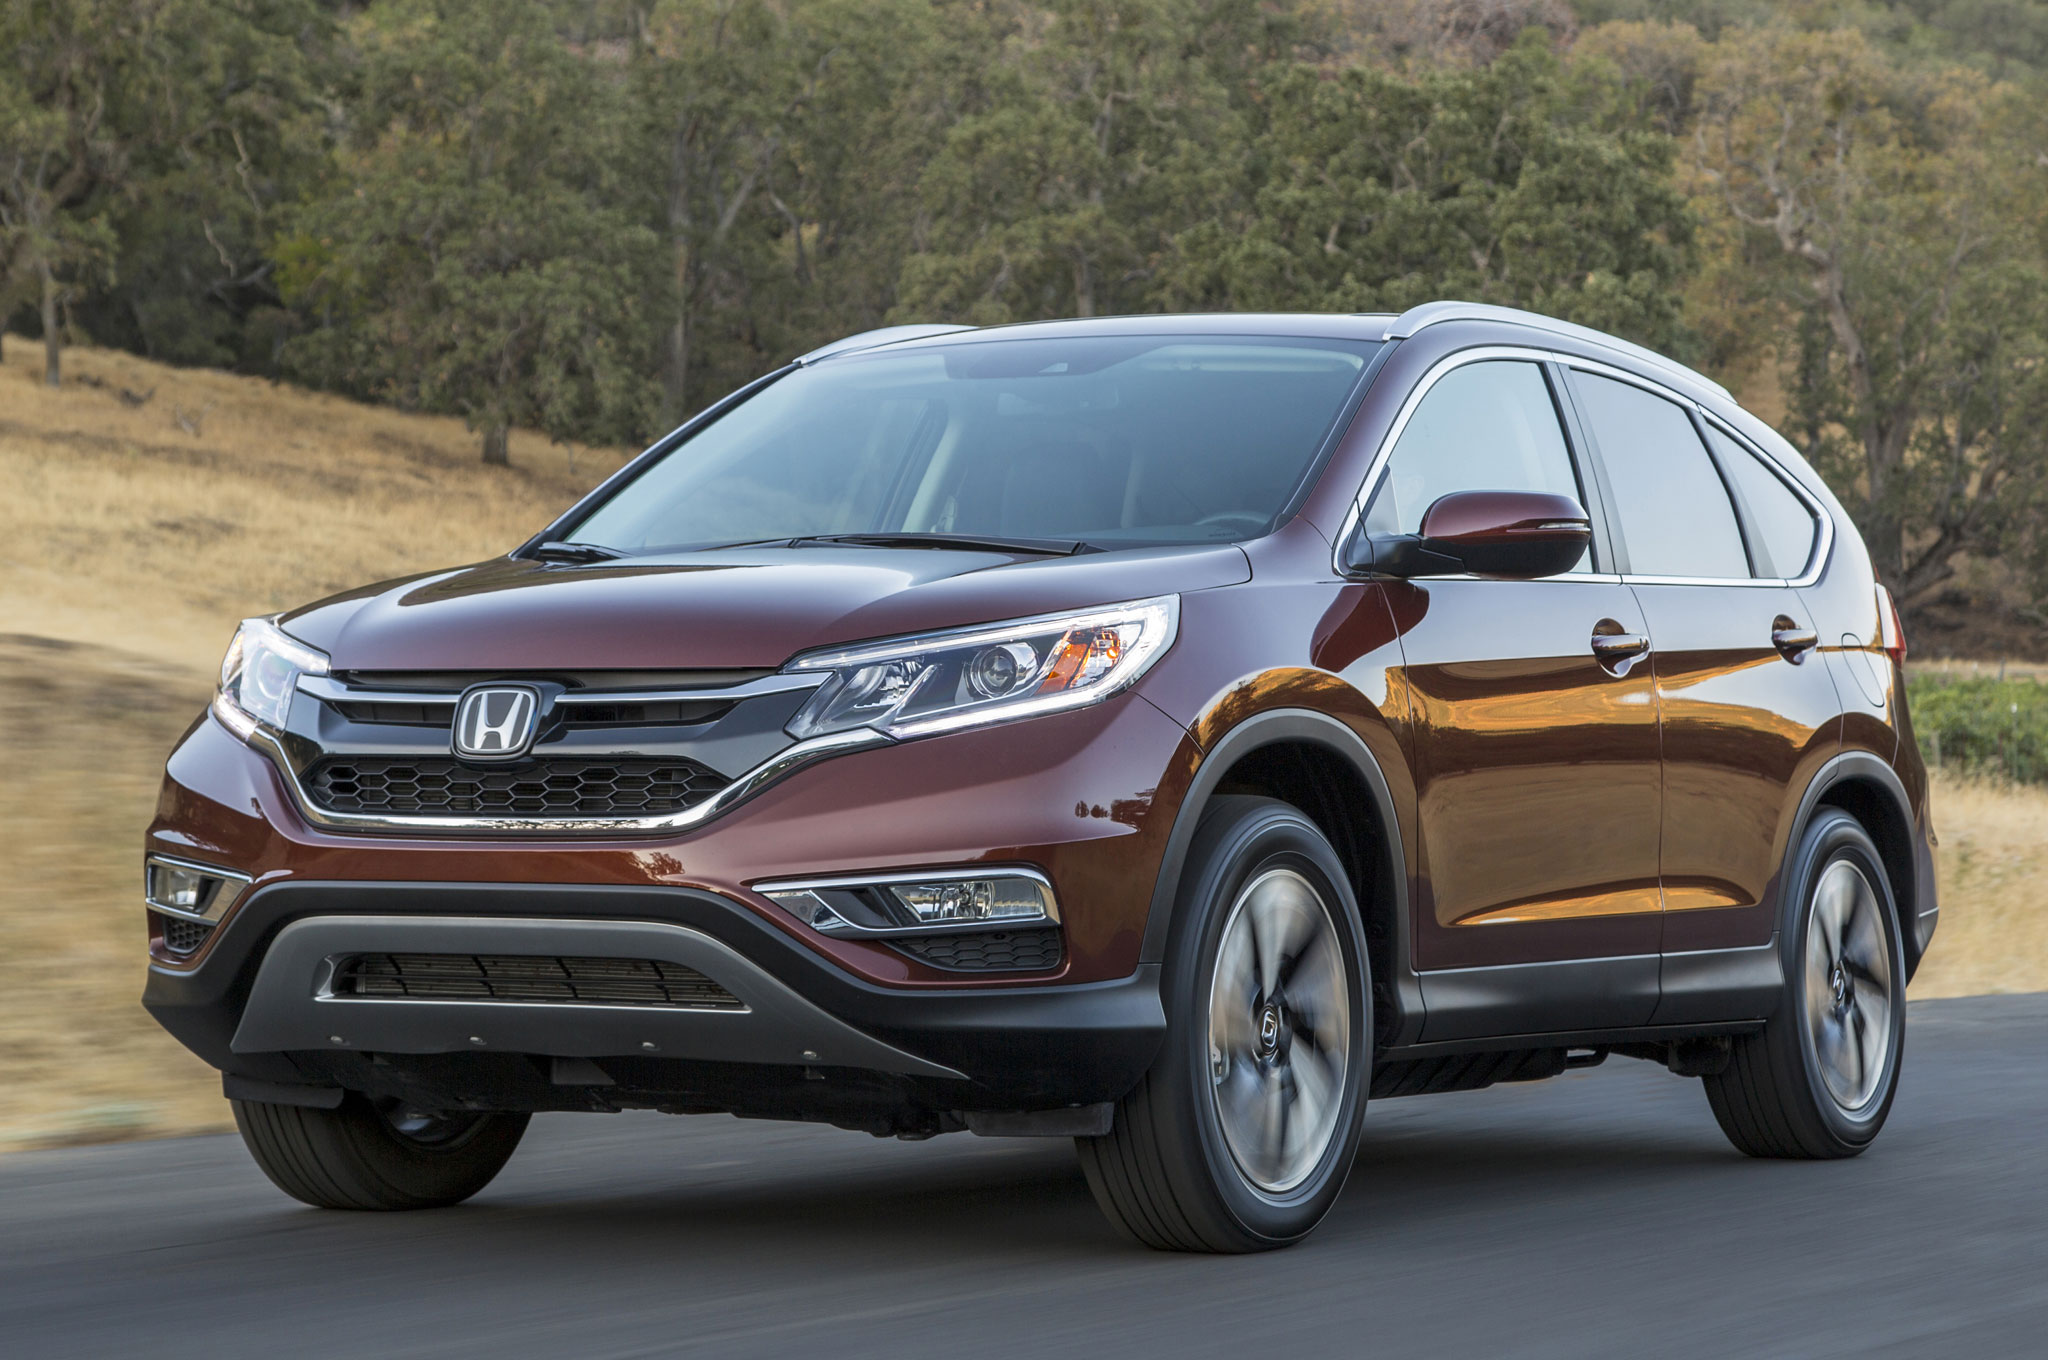 2015 honda cr v review for Honda crv competitors